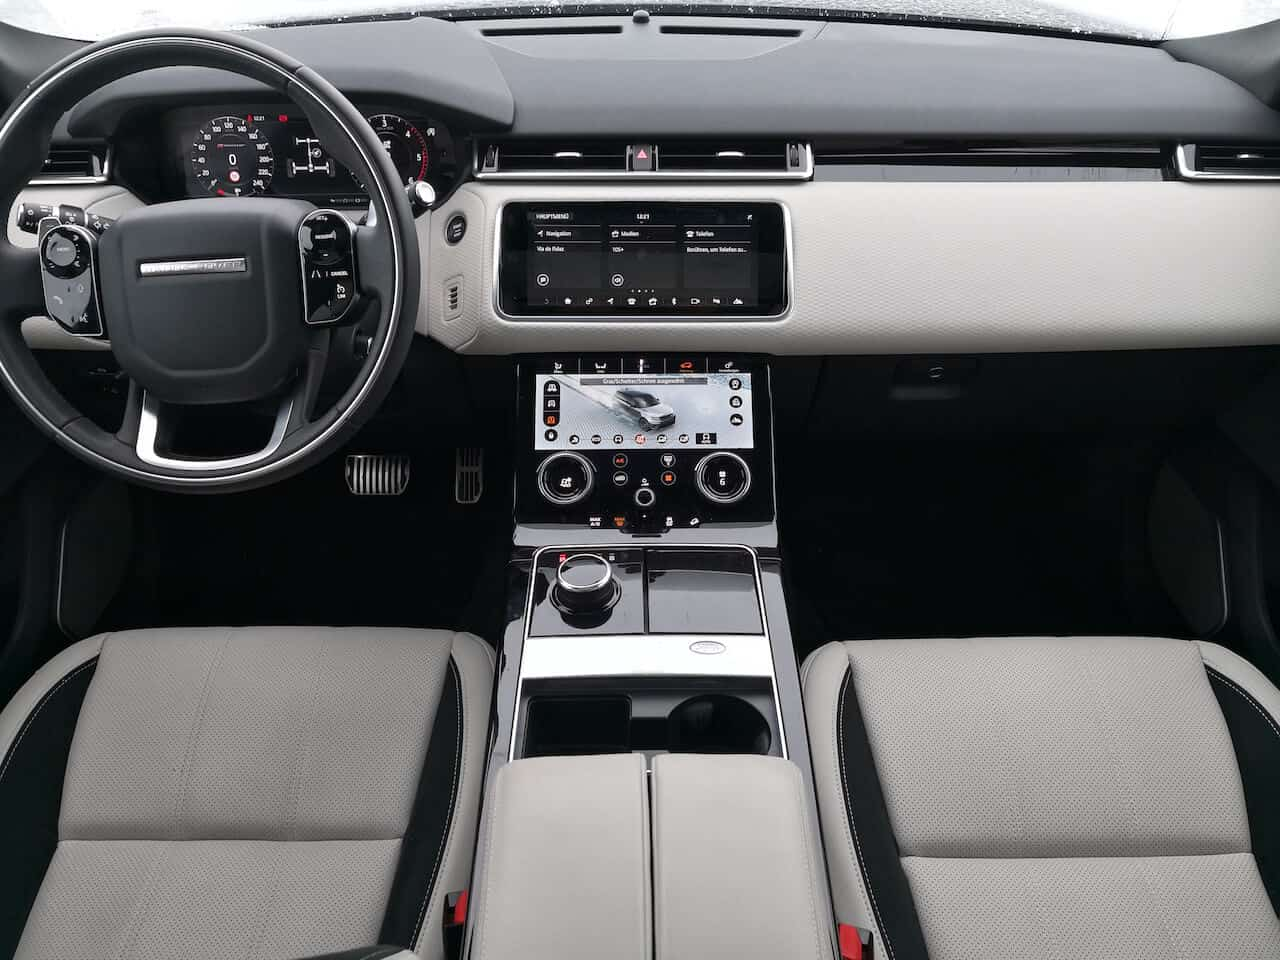 Range rover velar interior a gentleman 39 s world for Interno velar